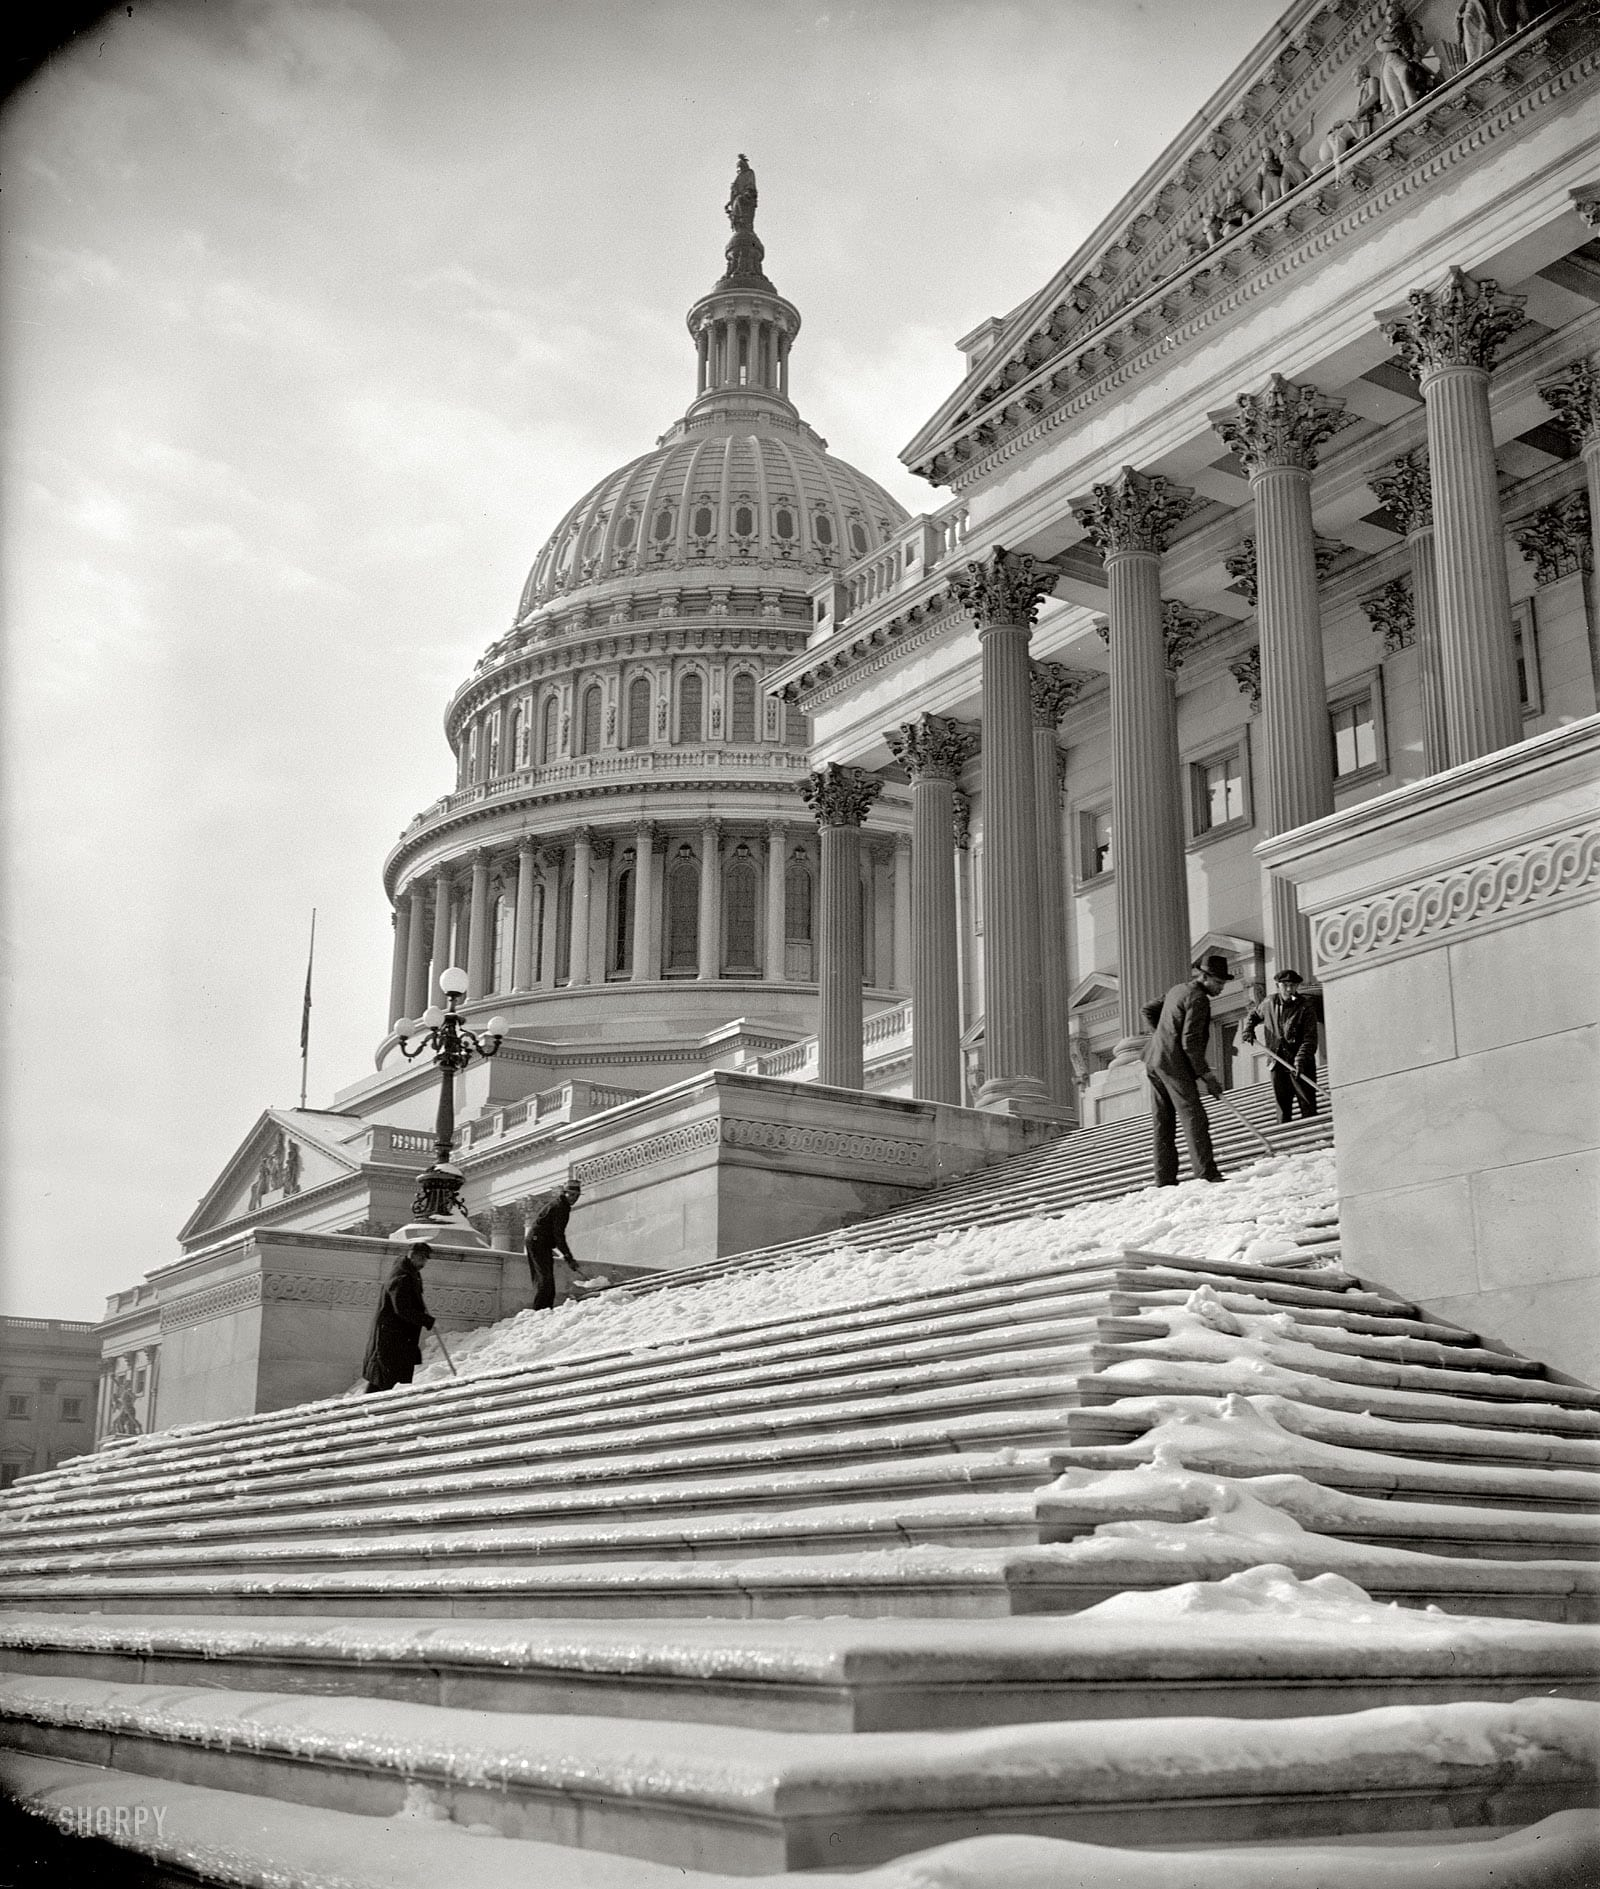 "January 14, 1939. ""National Capital digs out after storm. Nearly five inches of snow blanketed Washington yesterday, followed by sleet. Icy steps made the going to and from the Capitol difficult until workmen arrived this morning and scraped away the menace."" Harris & Ewing Collection glass negative"